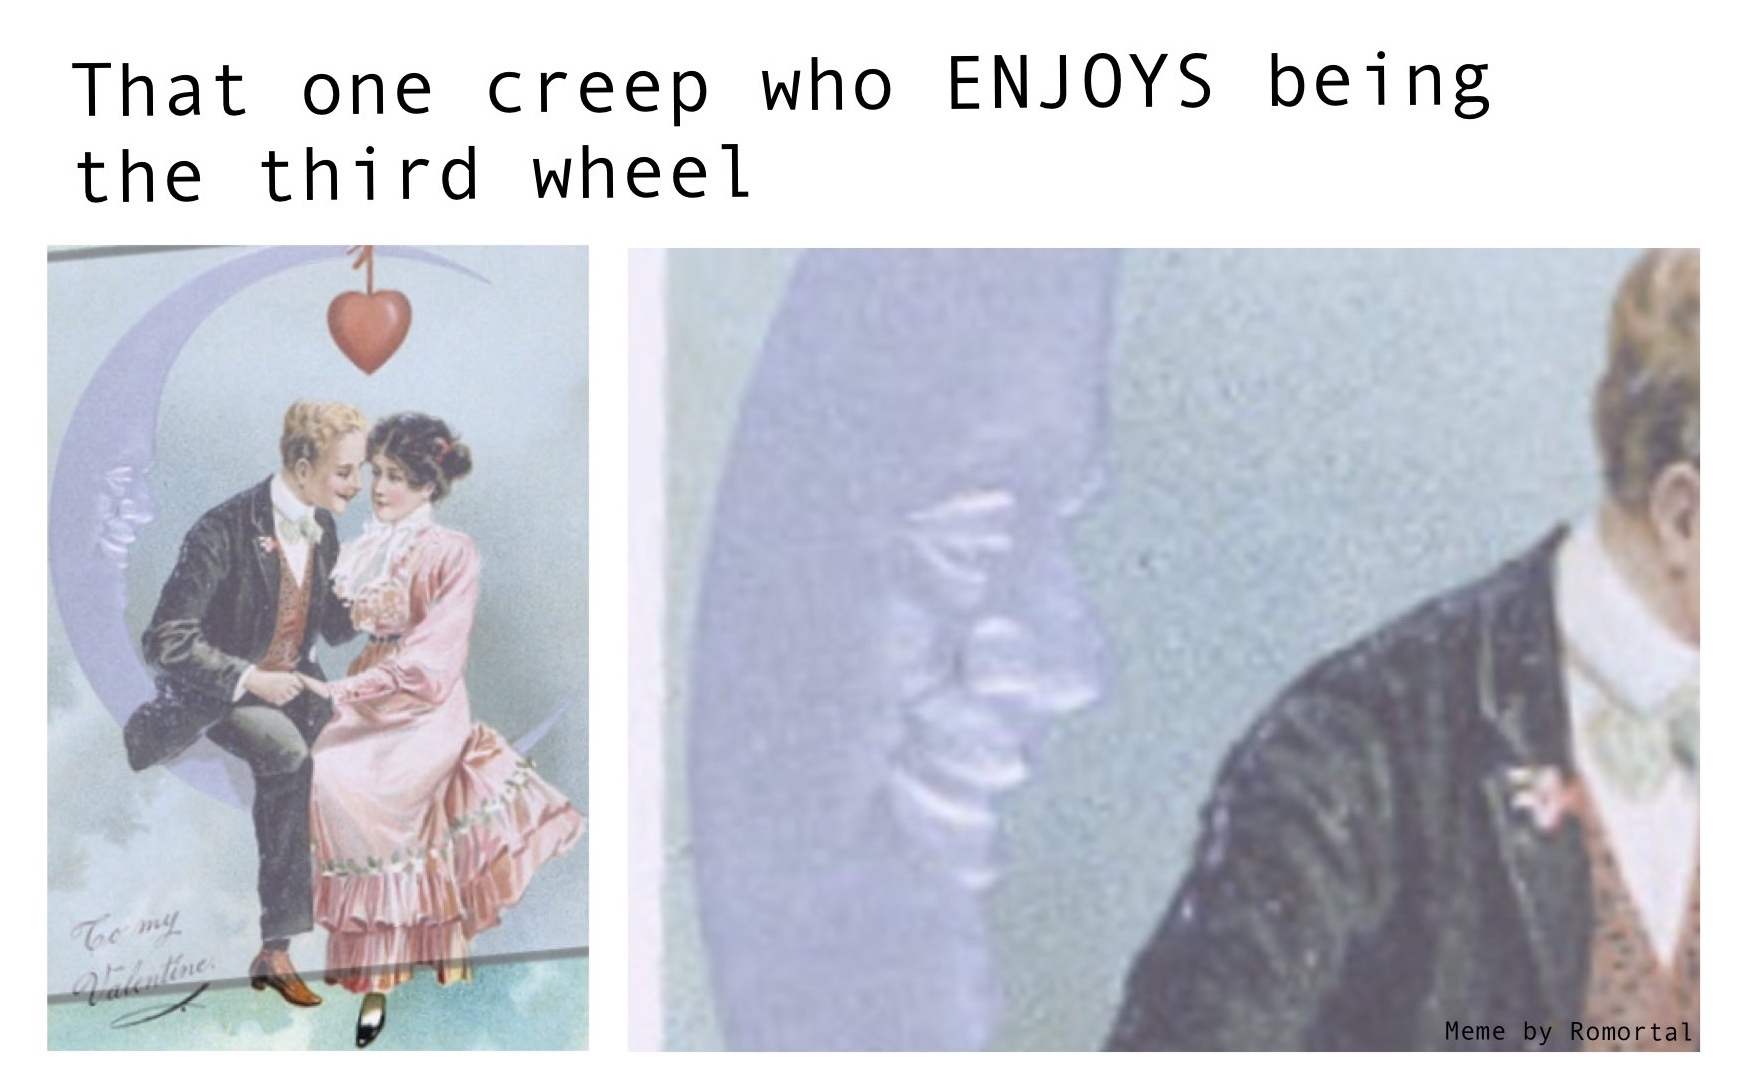 That one creep... - meme